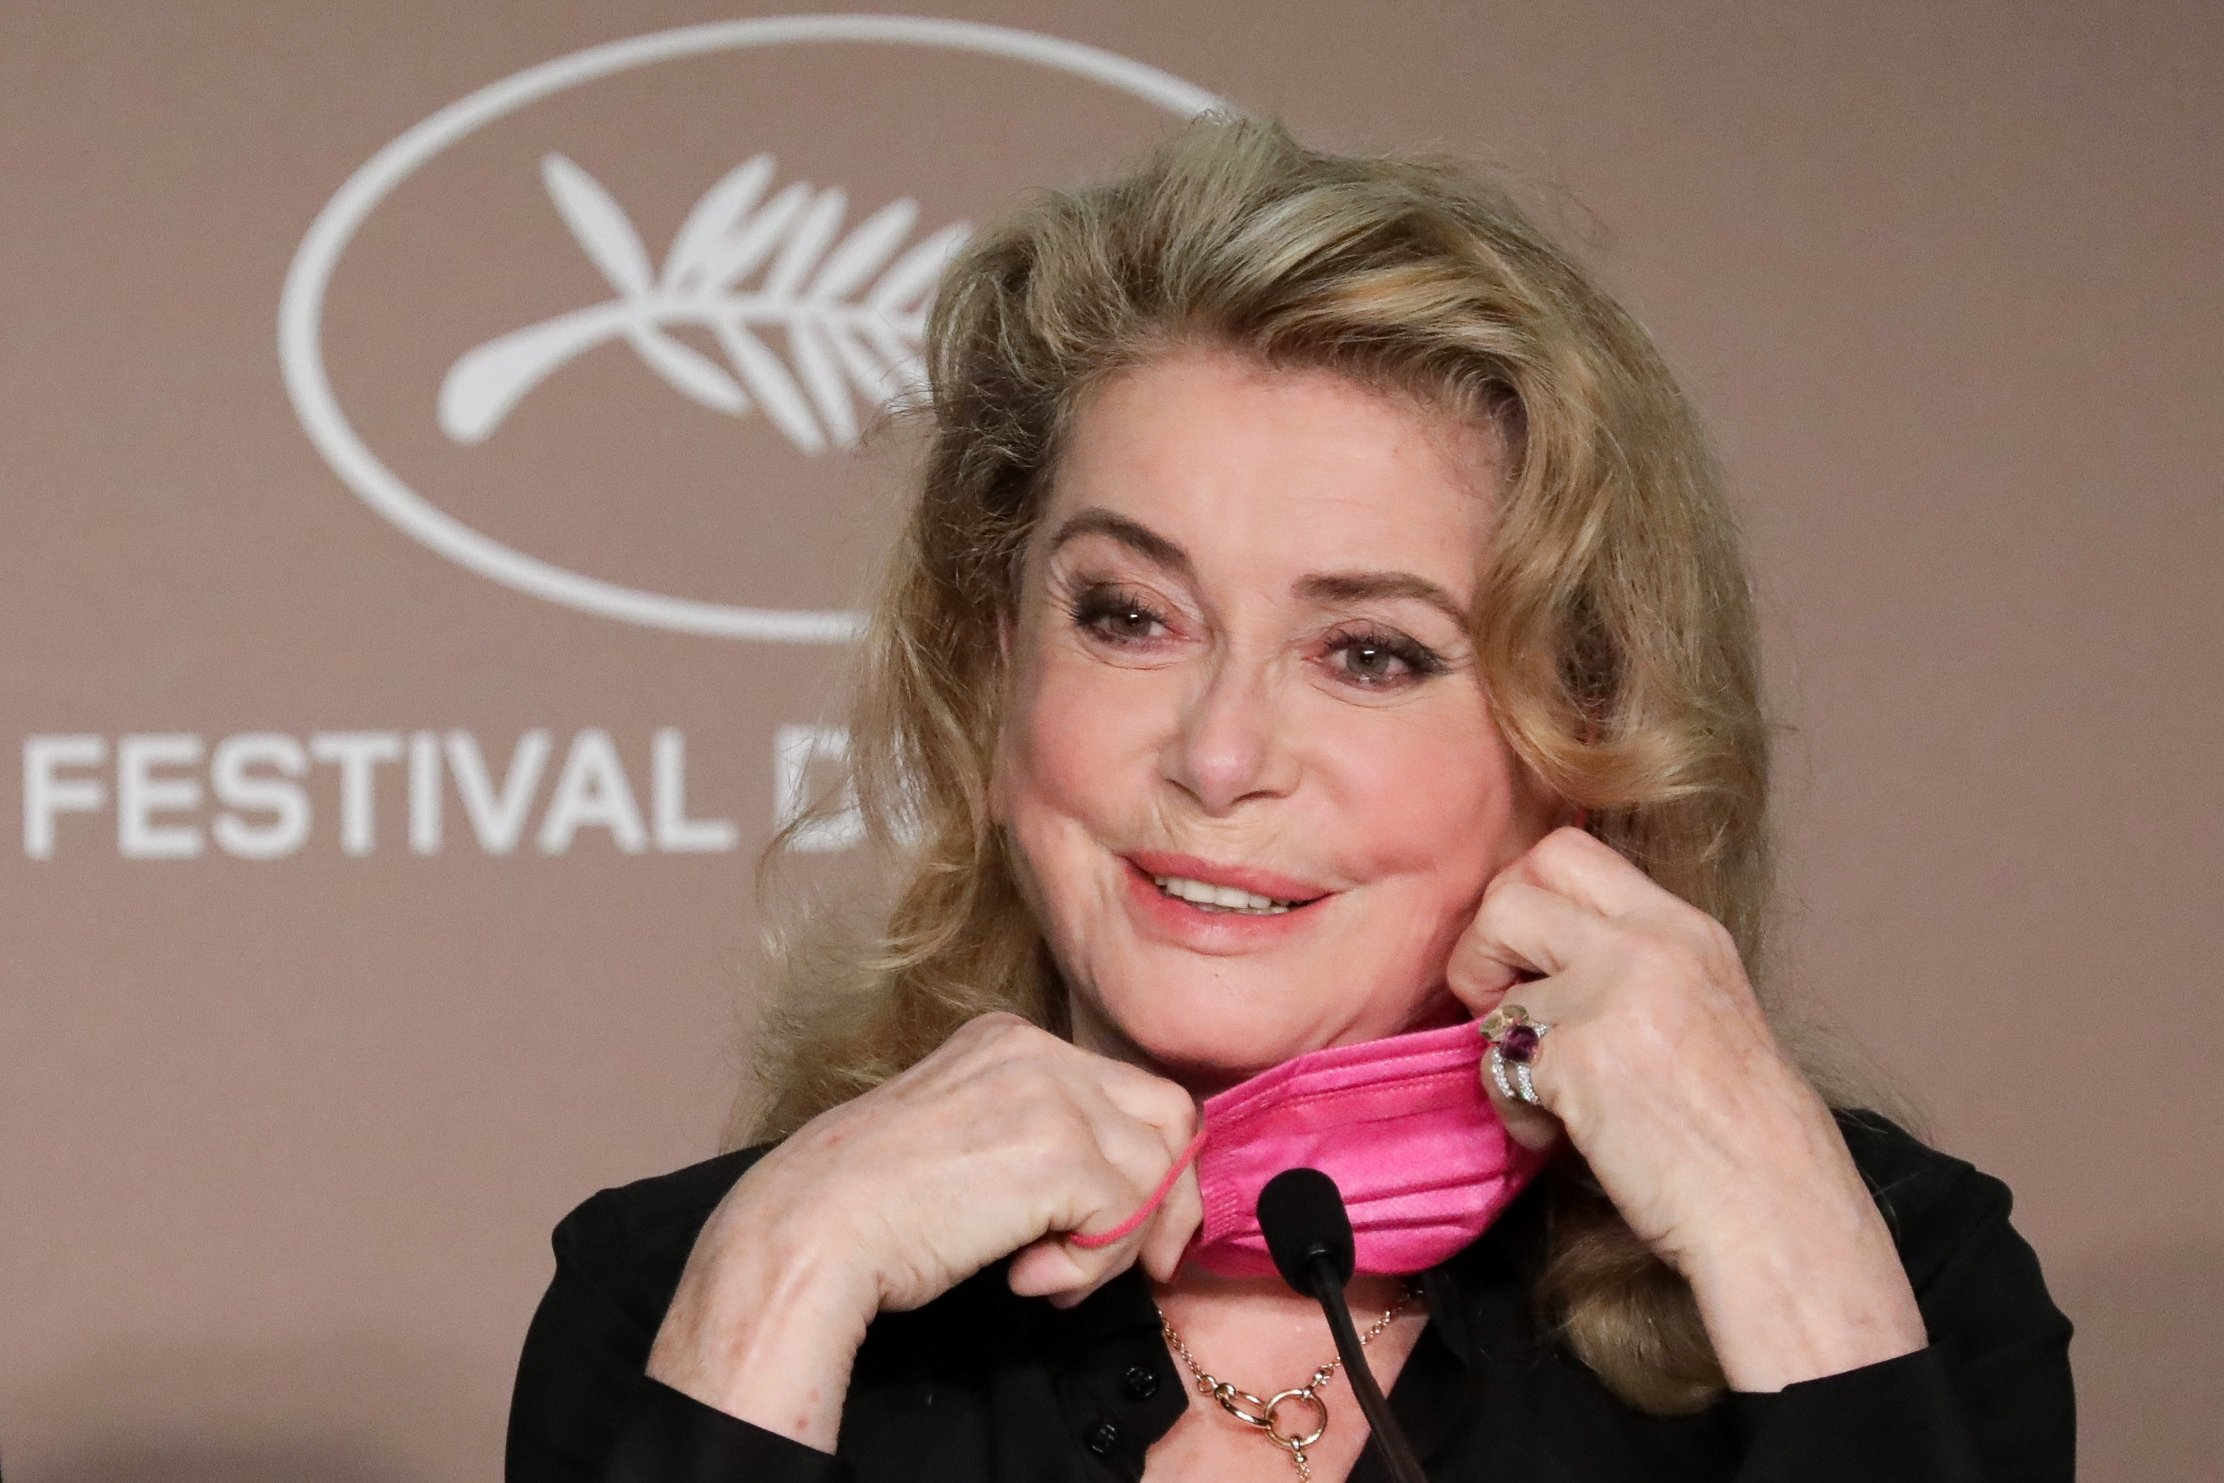 Catherine Deneuve attends a news conferencefor the film 'De son vivant' (Peaceful) at the 74th Cannes Film Festival in Cannes, France, July 11, 2021. (Reuters Photo)